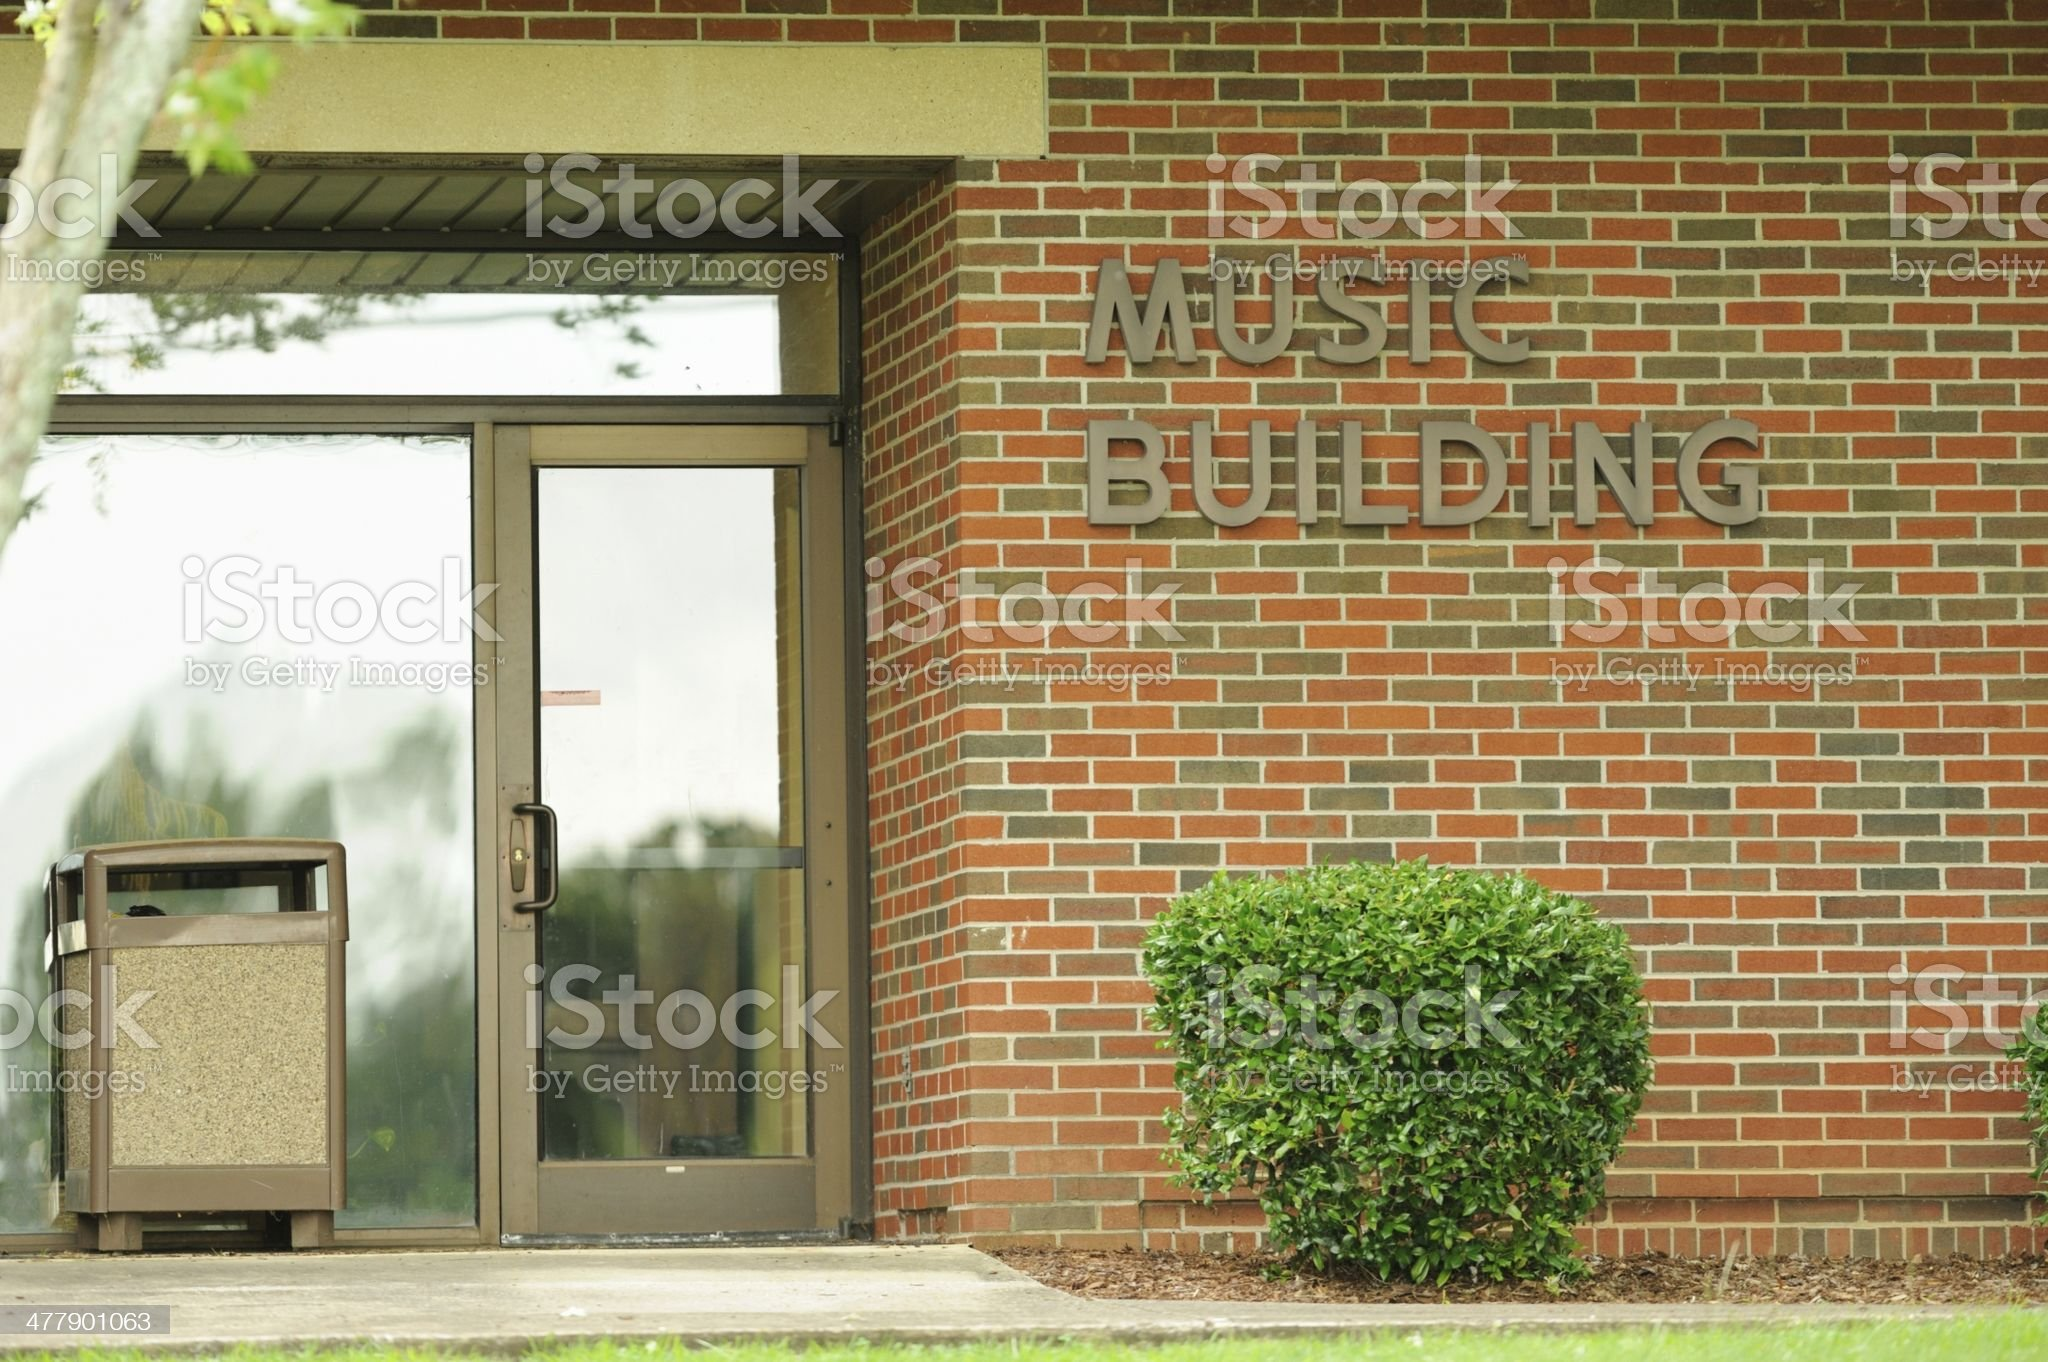 Music building royalty-free stock photo